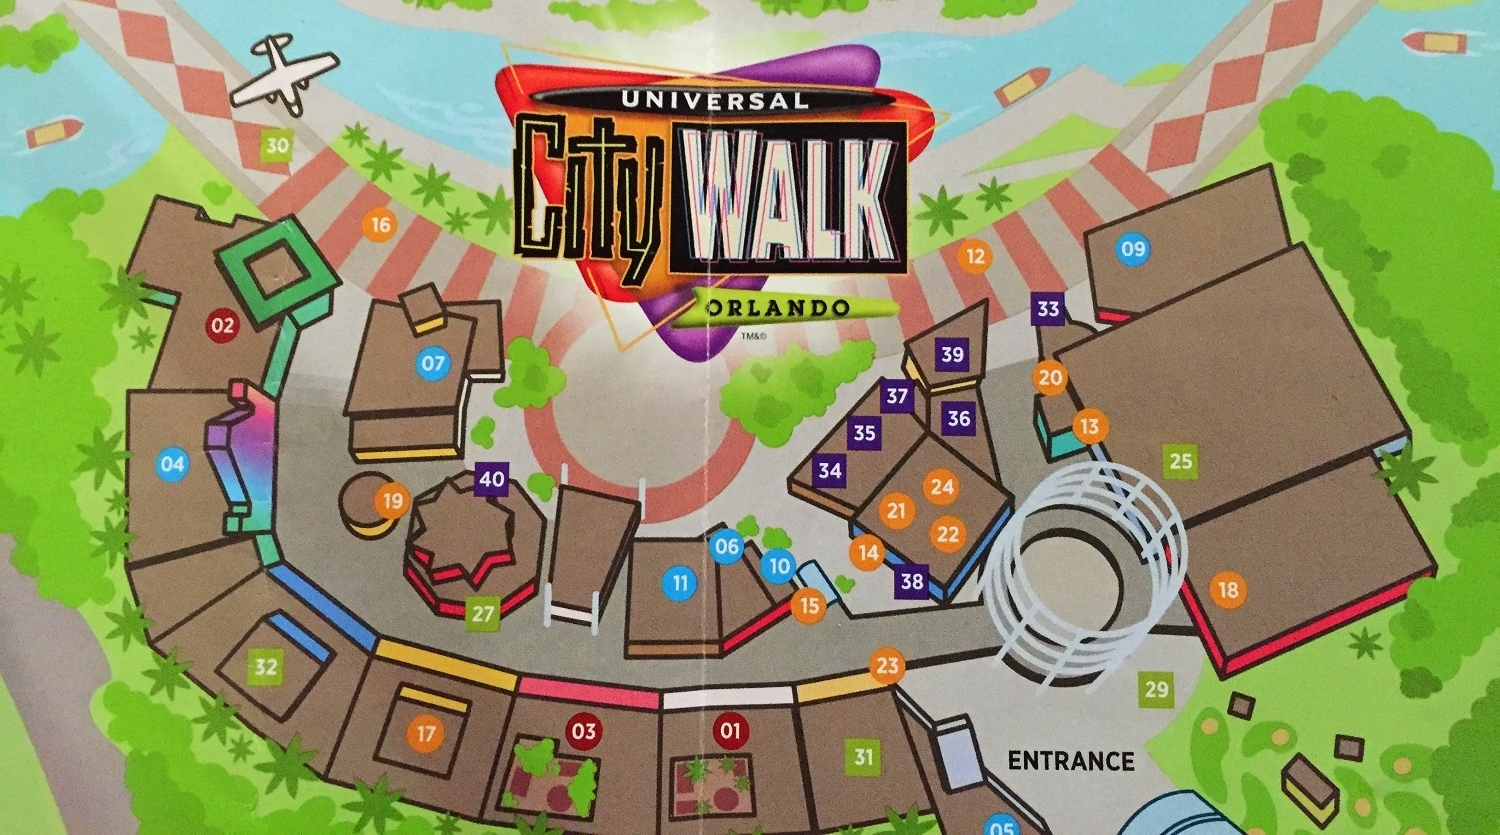 The AMC Universal Cineplex 20 with IMAX is number 25 on this CityWalk map.